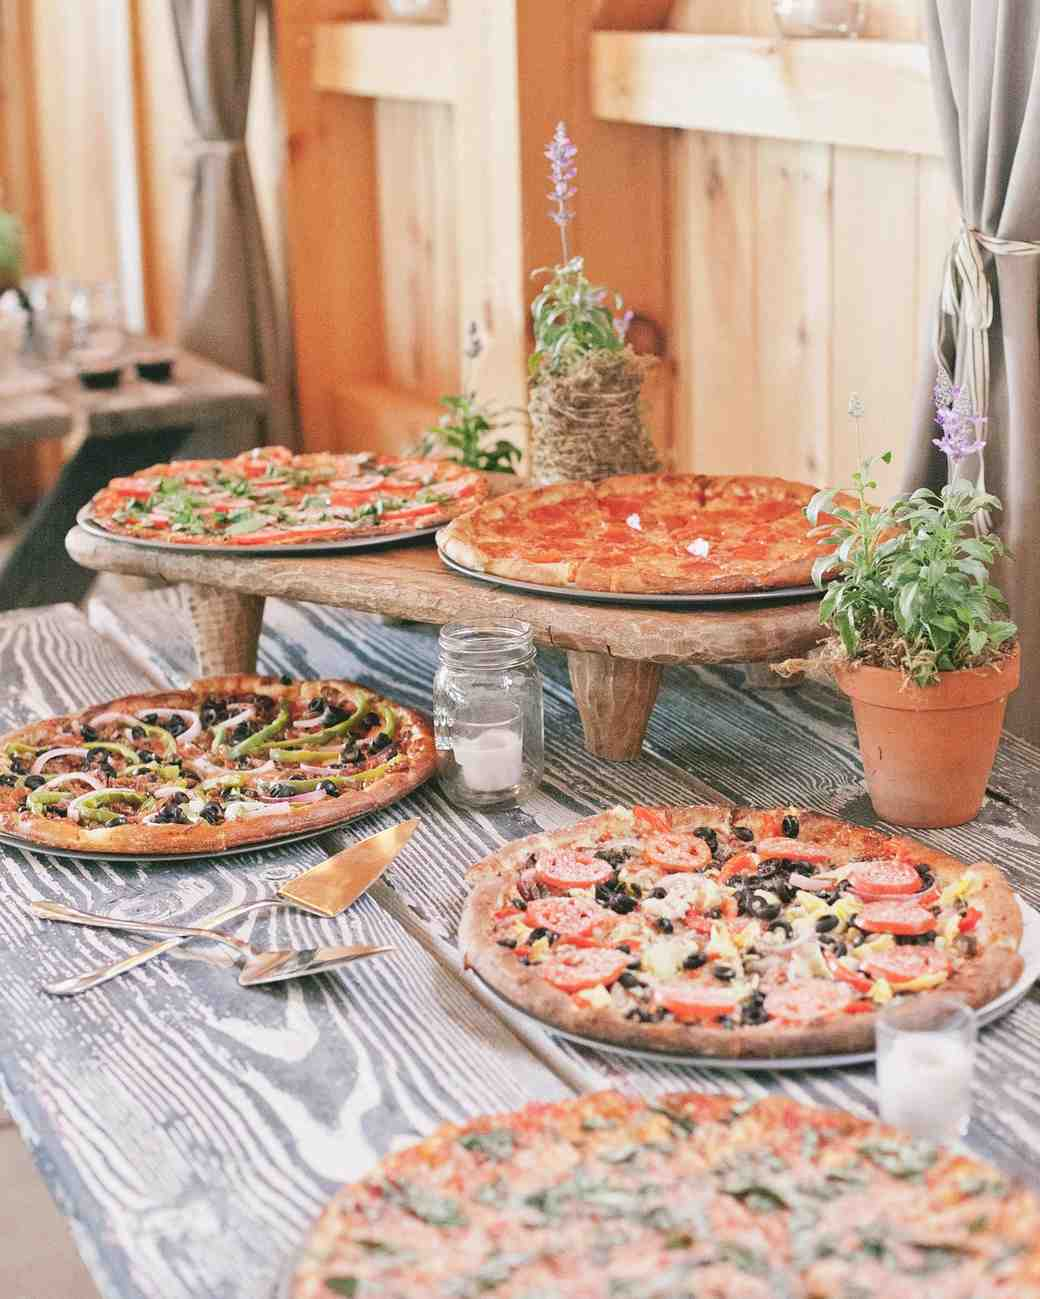 25 unexpected wedding food ideas your guests will love martha photography onelove photo solutioingenieria